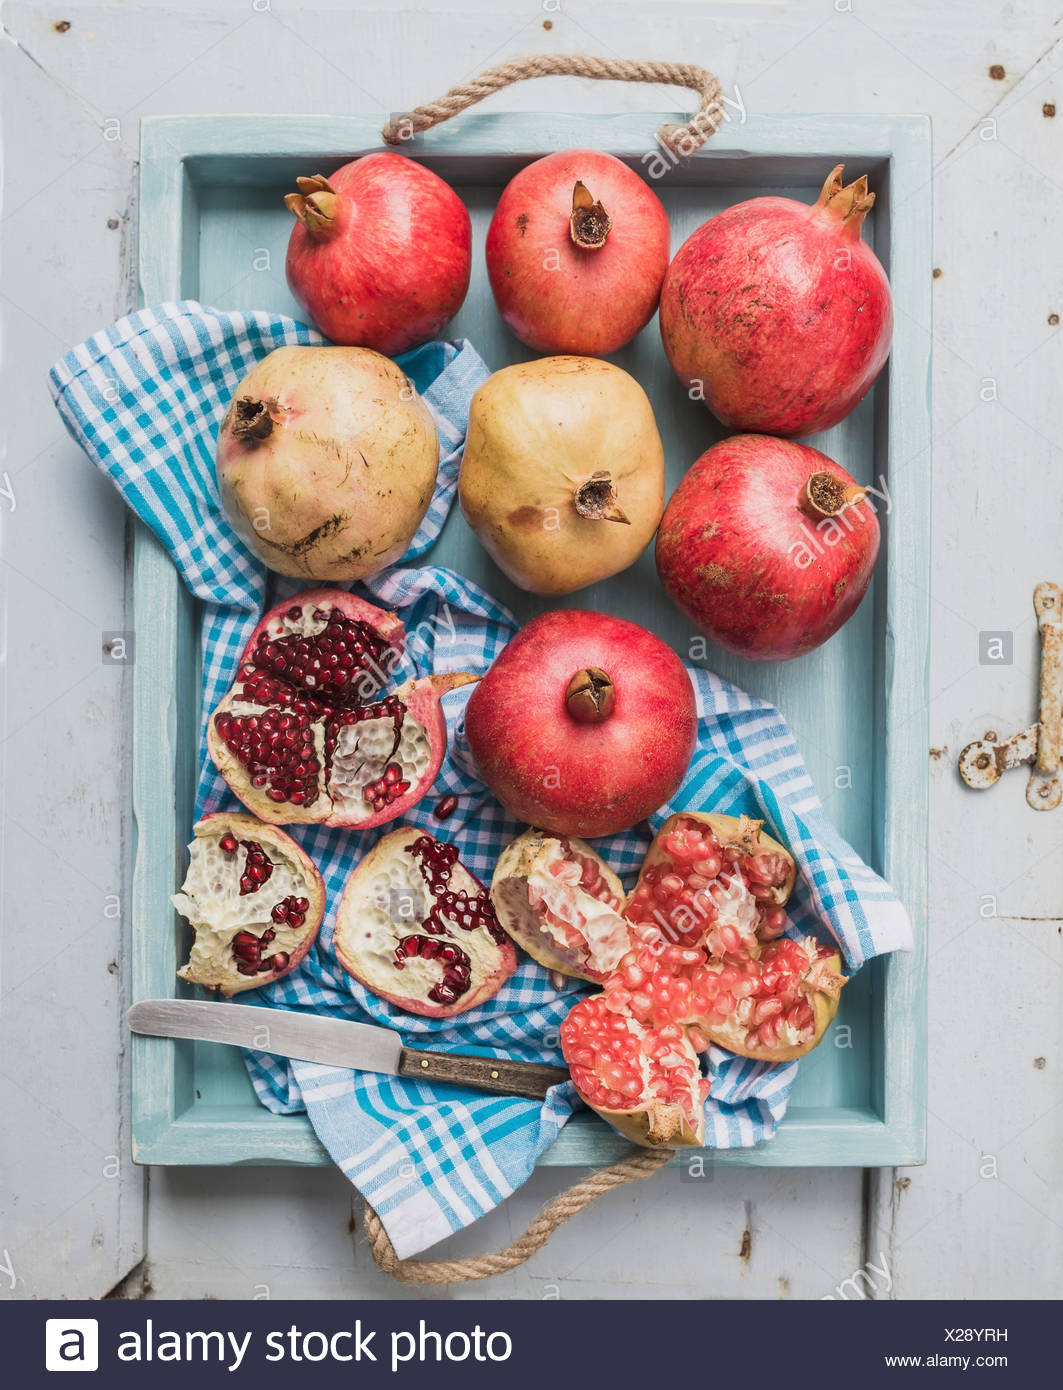 Red and white pomegranates and knife on kitchen towel in blue tray over light painted wooden backdrop, top view - Stock Image